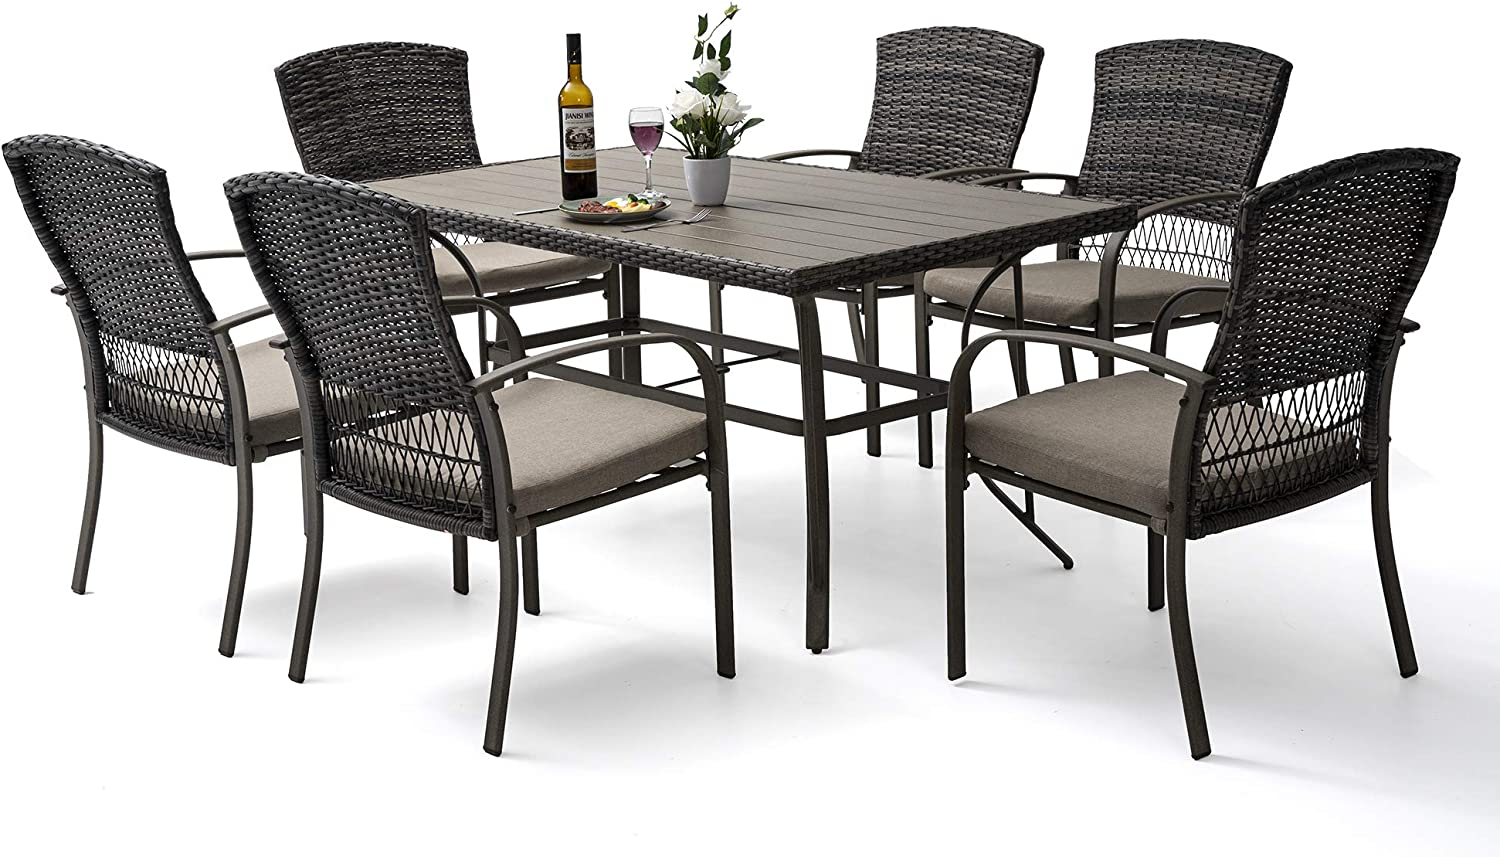 Pamapic 9 Piece Patio Dining Set, Outdoor Dining Table Set, Patio Wicker  Furniture Set for Backyard Garden Deck Poolside/Iron Slats Table Top, ...